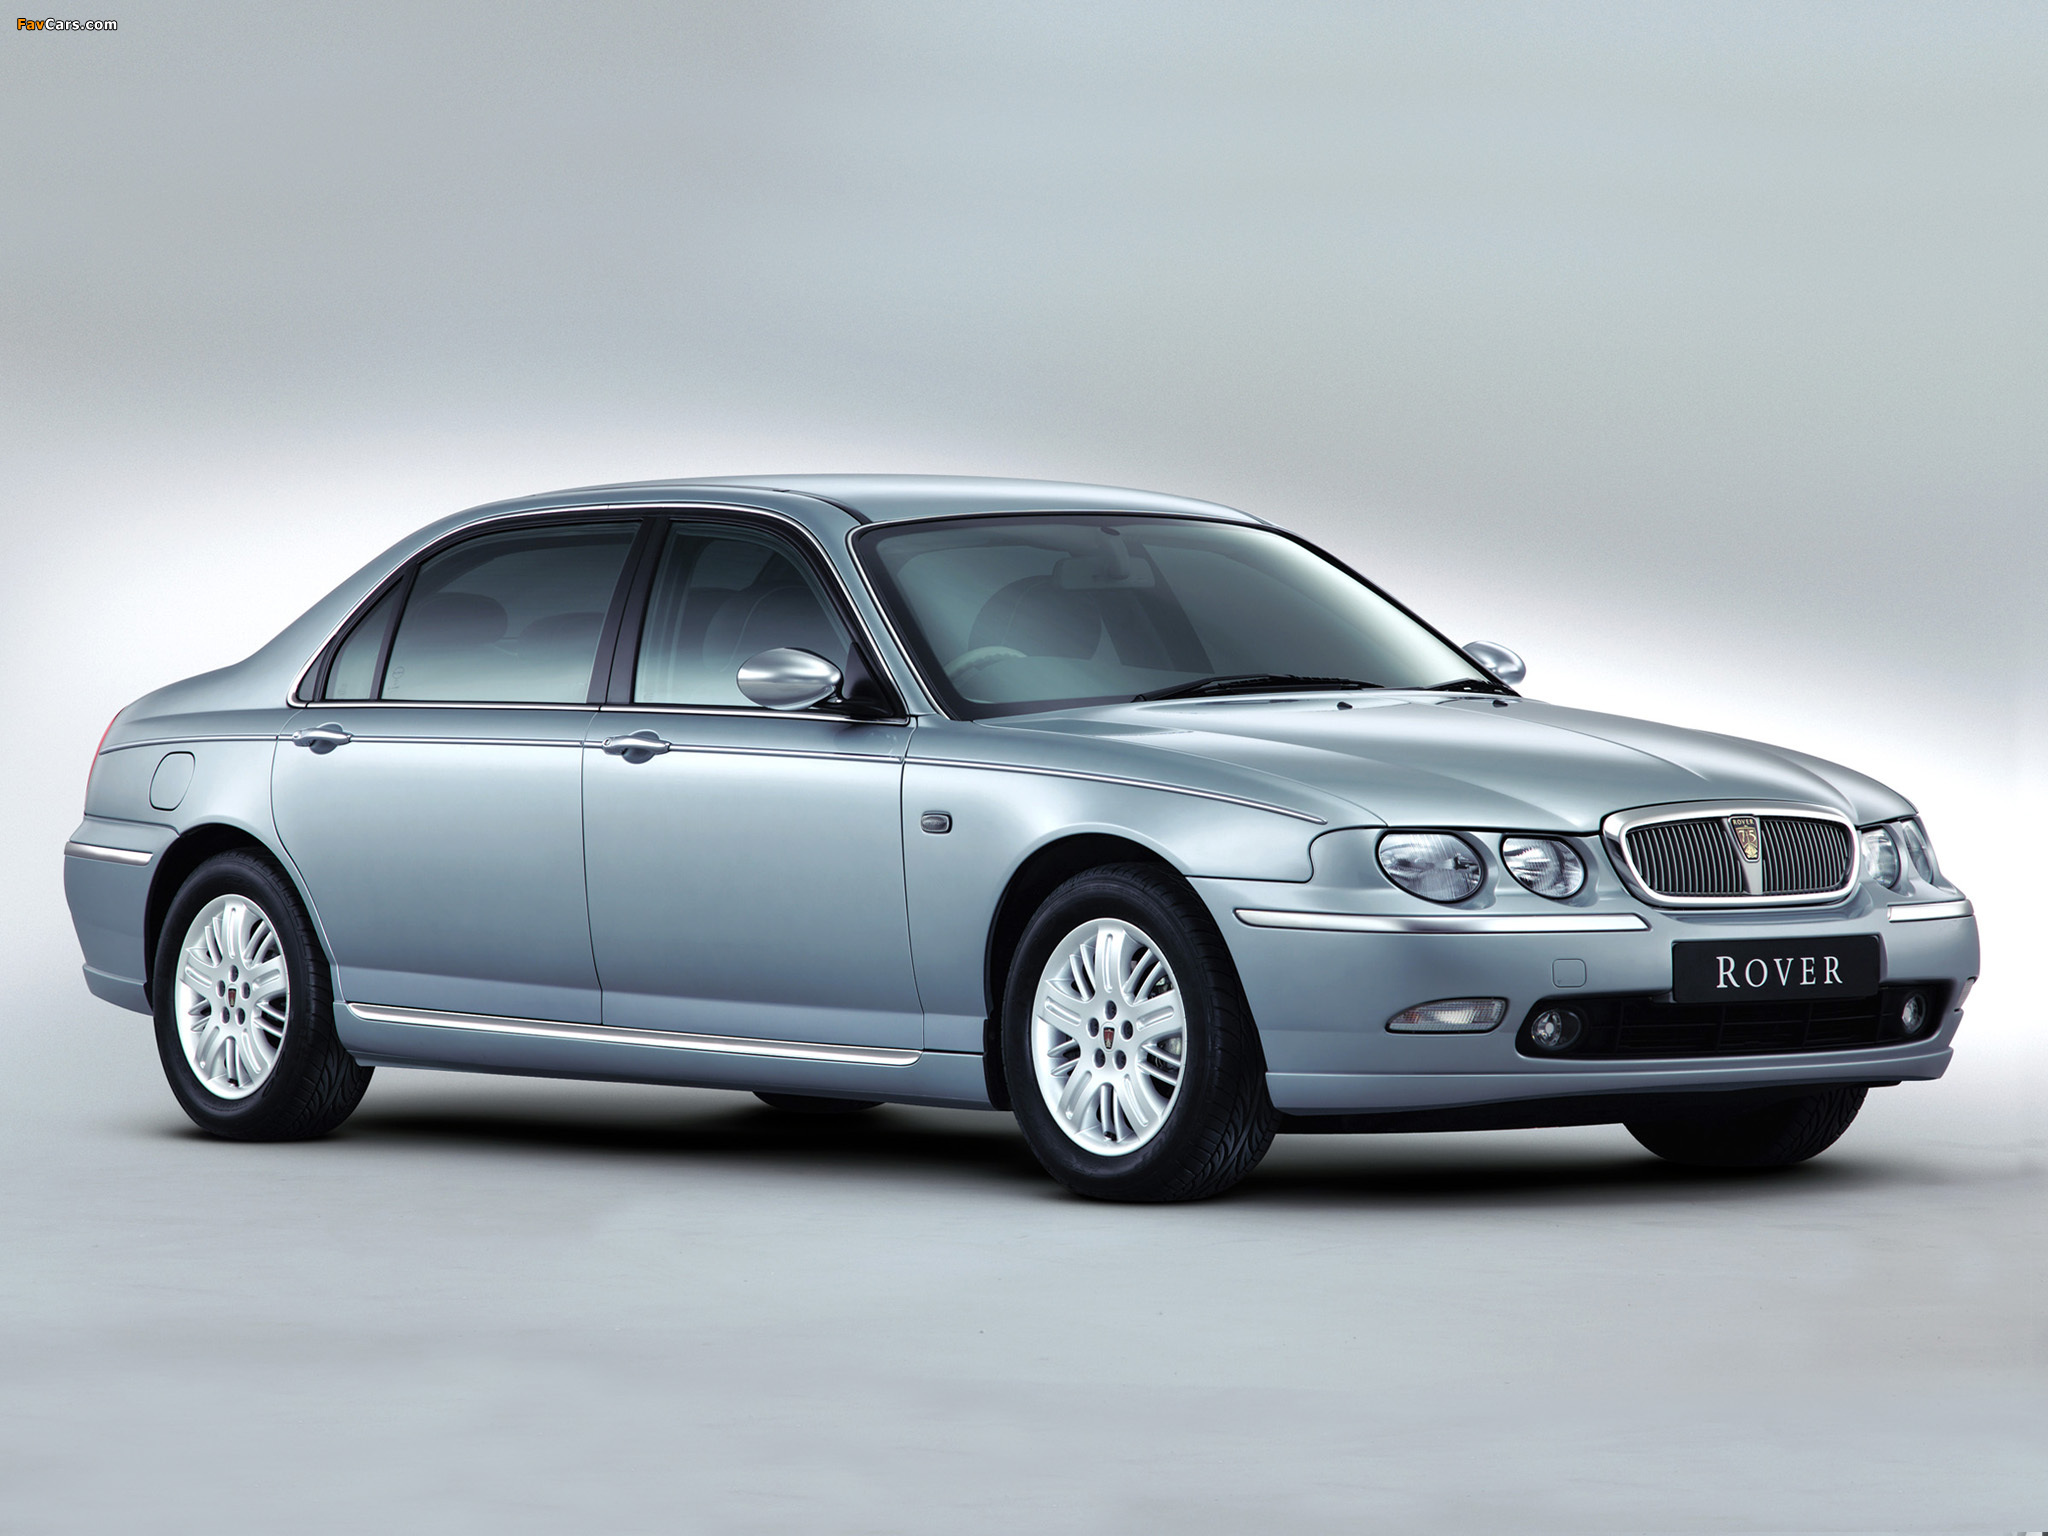 2003 rover 75 photos informations articles. Black Bedroom Furniture Sets. Home Design Ideas